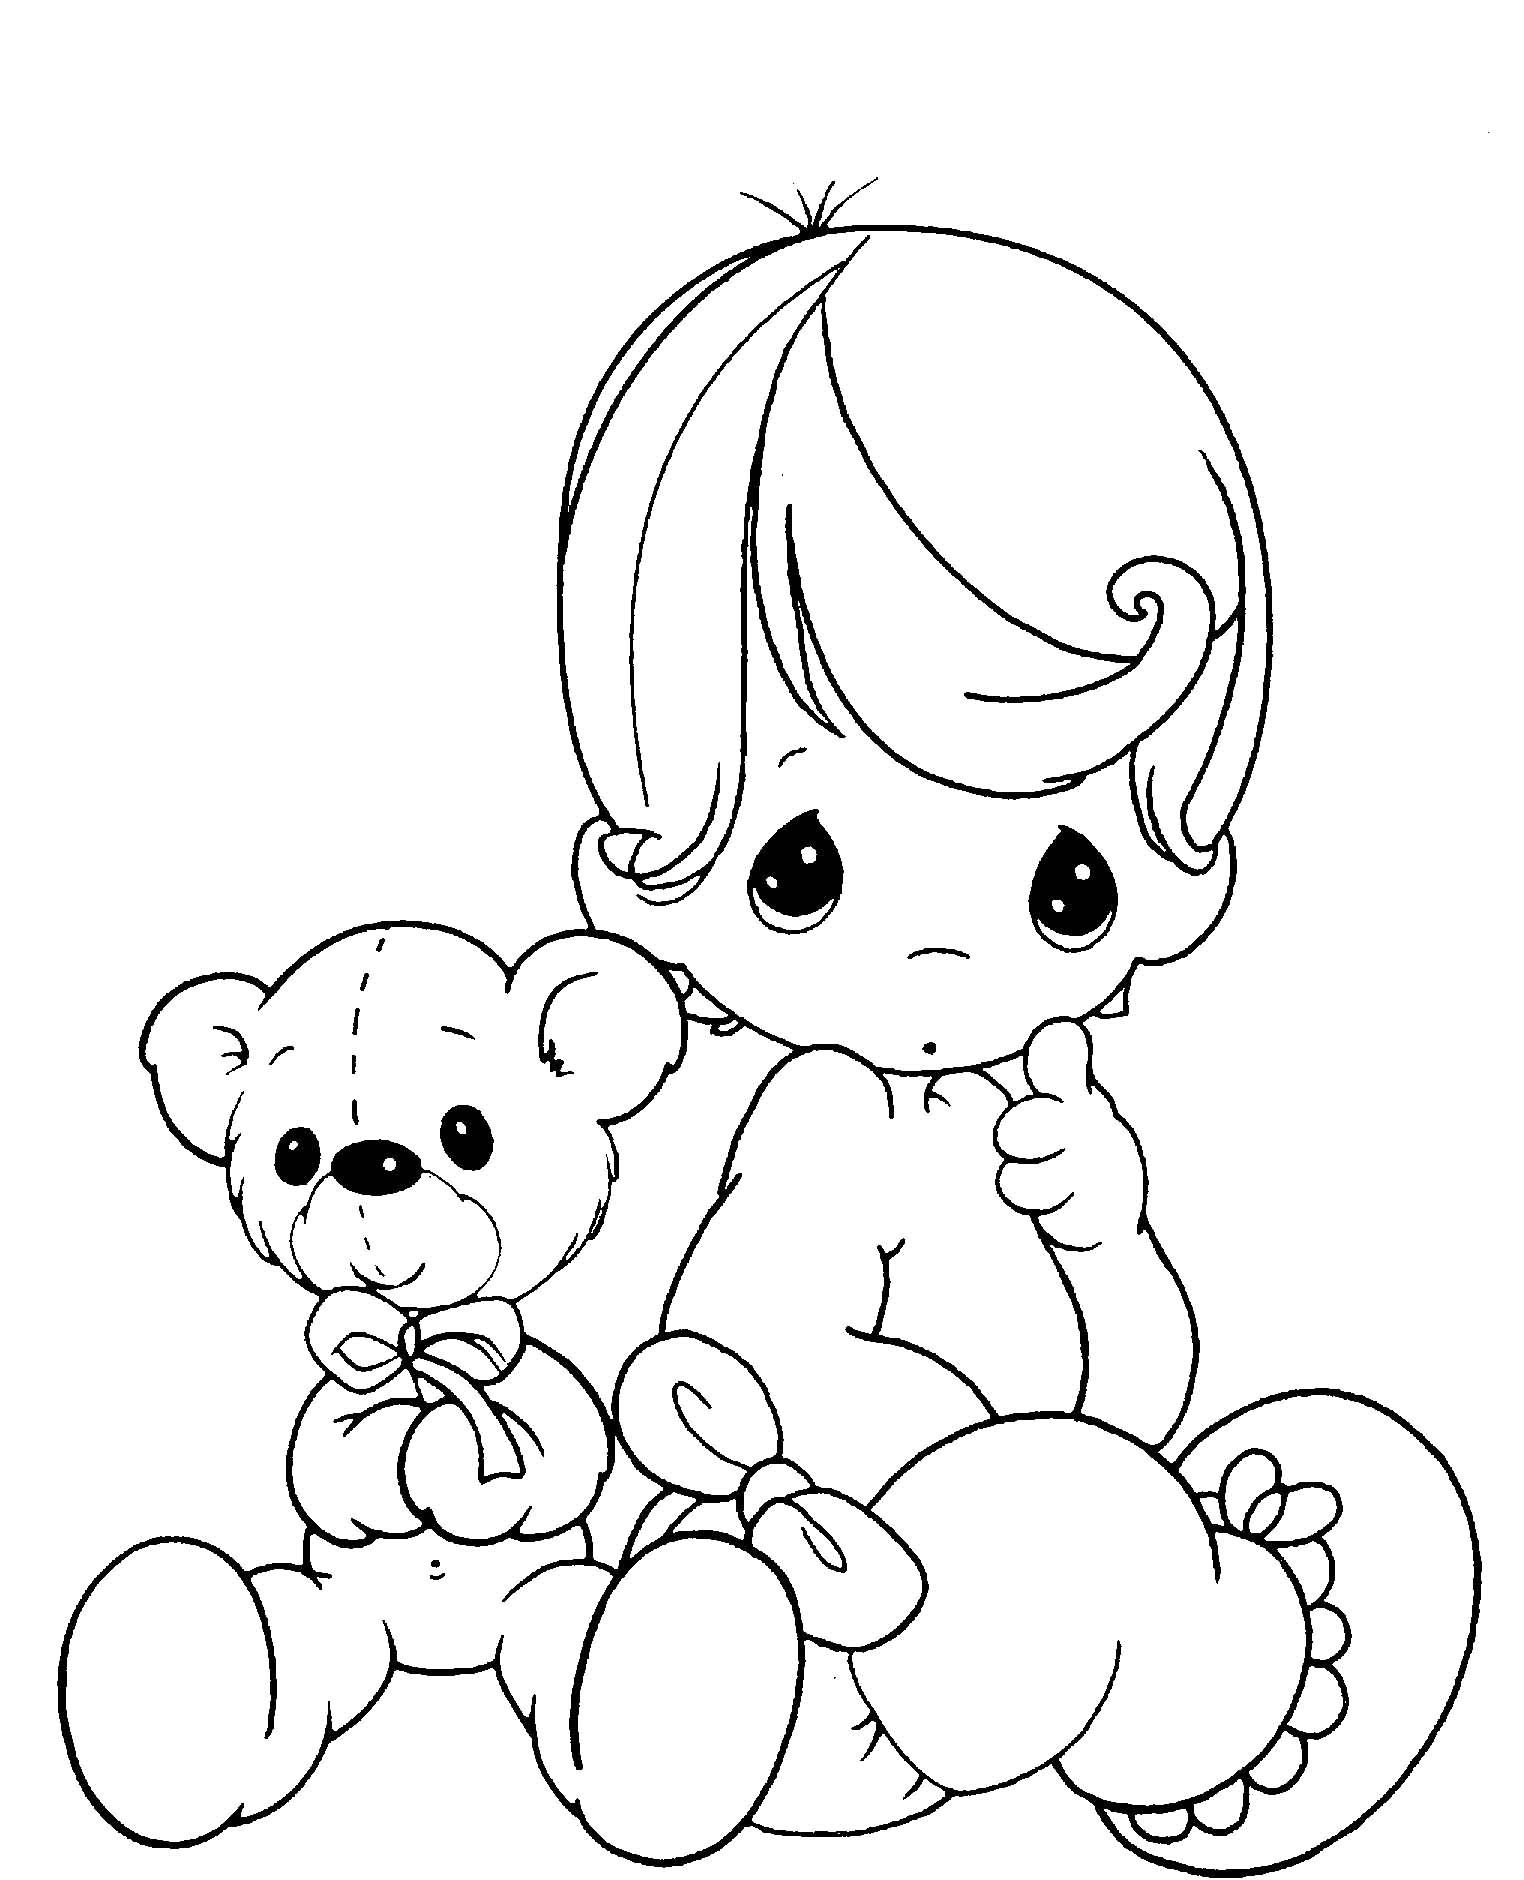 Baby And Teddy Bear Precious Moments Coloring Page Free Download ...